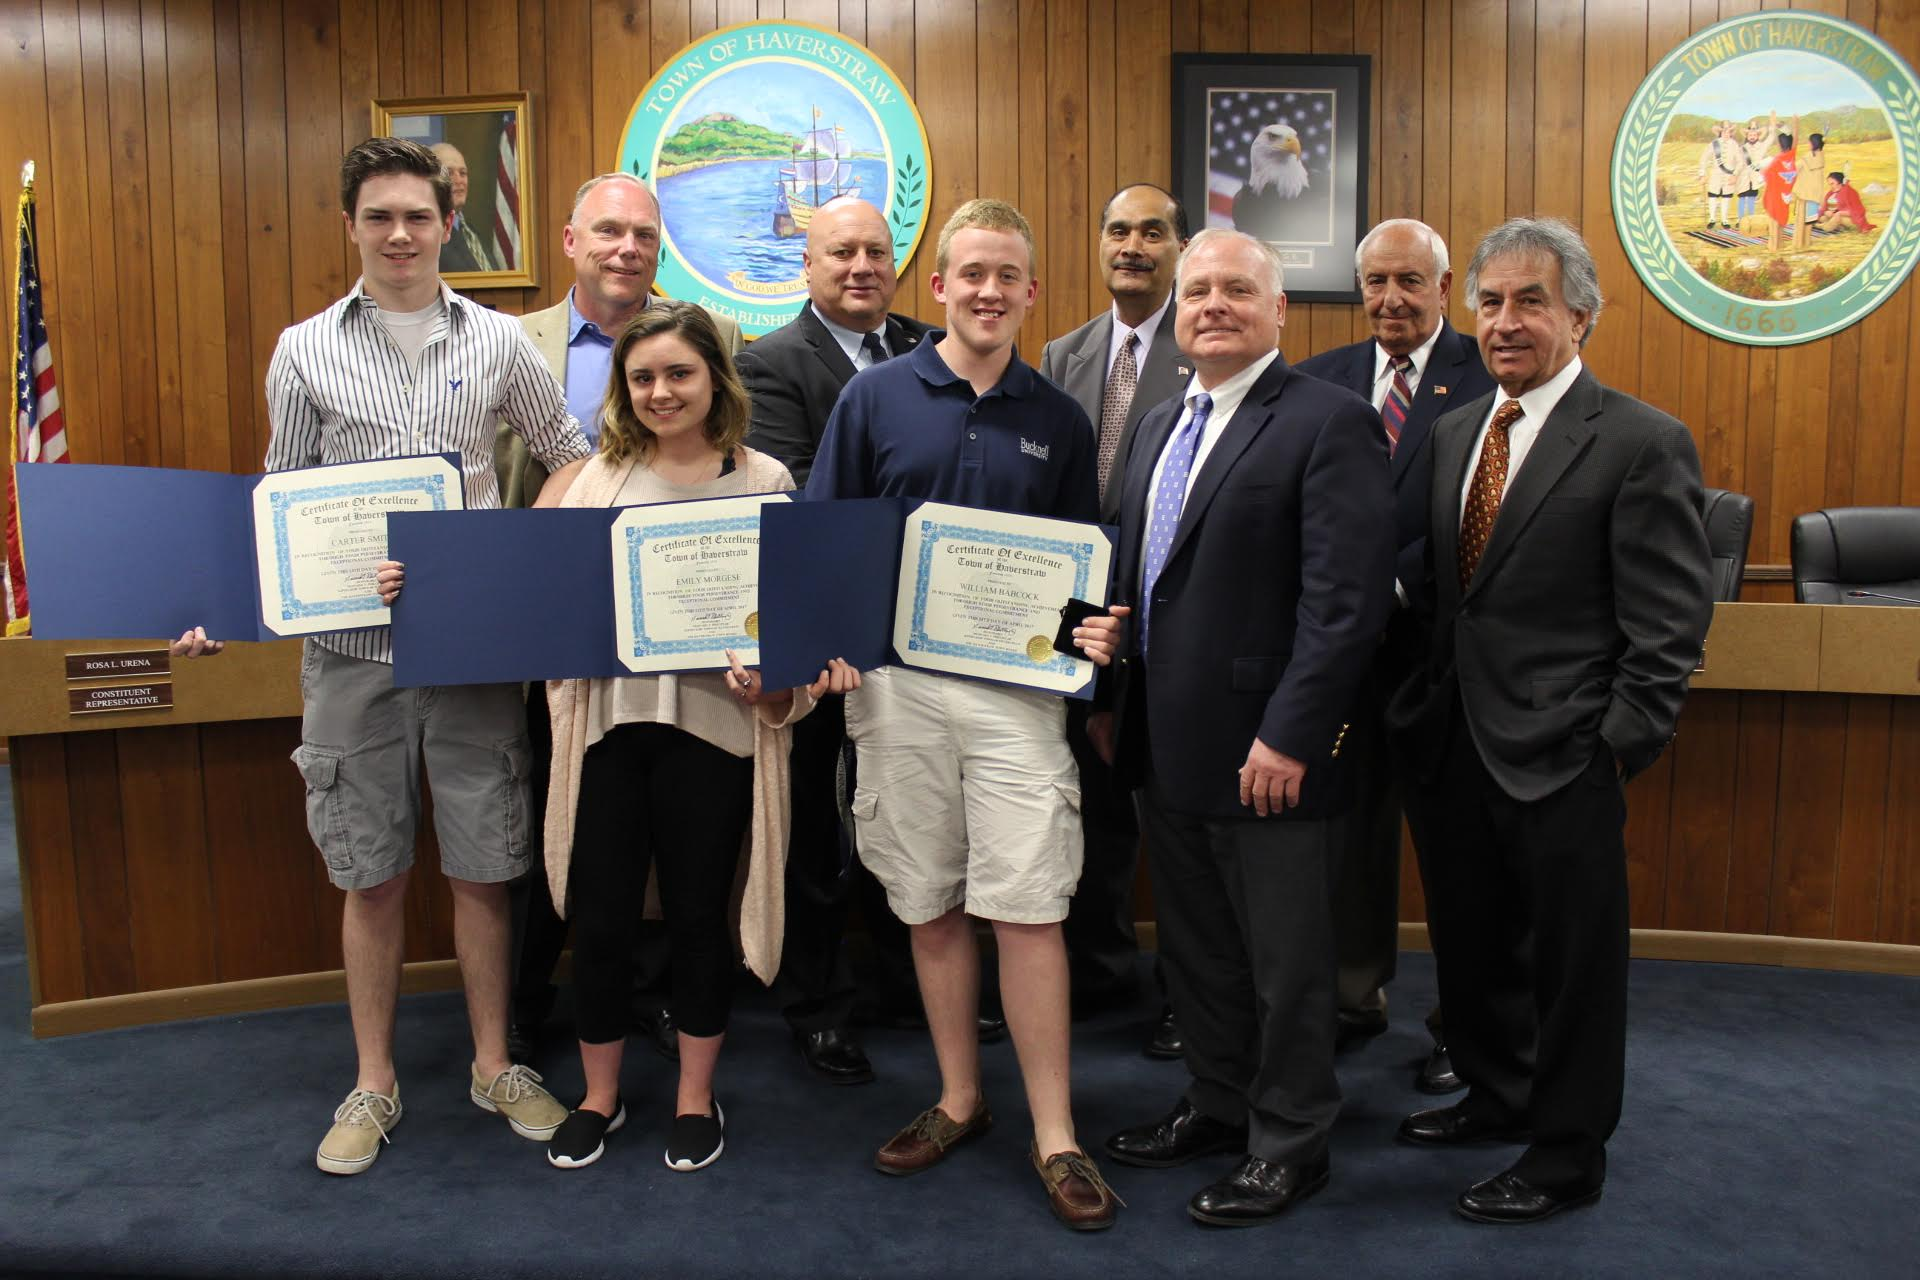 SOCIAL STUDIES STUDENTS HONORED BY HAVERSTRAW TOWN BOARD